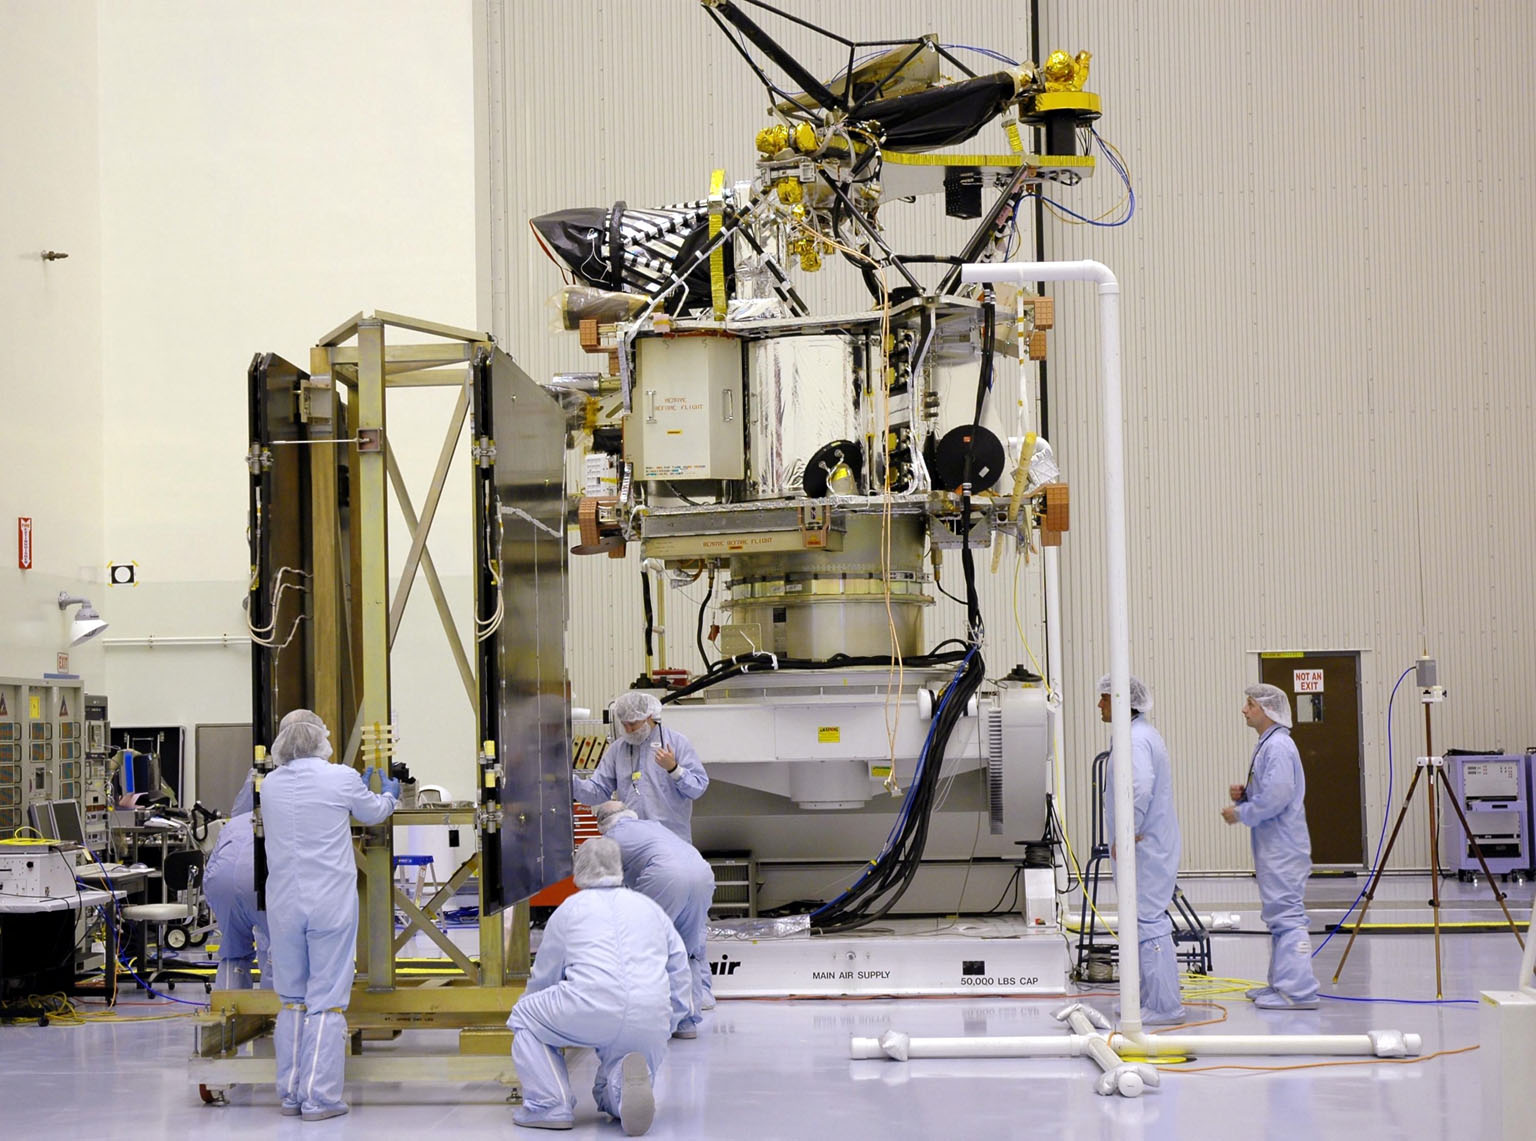 KENNEDY SPACE CENTER, FLA. - In the Payload Hazardous Servicing Facility, technicians position the solar arrays for the Mars Reconnaissance Orbiter (MRO) in preparation for an electromagnetic interference verification test. If no interference is found during the test, the Shallow Radar Antenna (SHARAD) will be installed on the spacecraft. The spacecraft is undergoing multiple mechanical assembly operations and electrical tests to verify its readiness for launch. The MRO was built by Lockheed Martin for NASA?s Jet Propulsion Laboratory in California. It is the next major step in Mars exploration and scheduled for launch from Launch Complex 41 at Cape Canaveral Air Force Station in a window opening Aug. 10. The MRO is an important next step in fulfilling NASA?s vision of space exploration and ultimately sending human explorers to Mars and beyond.